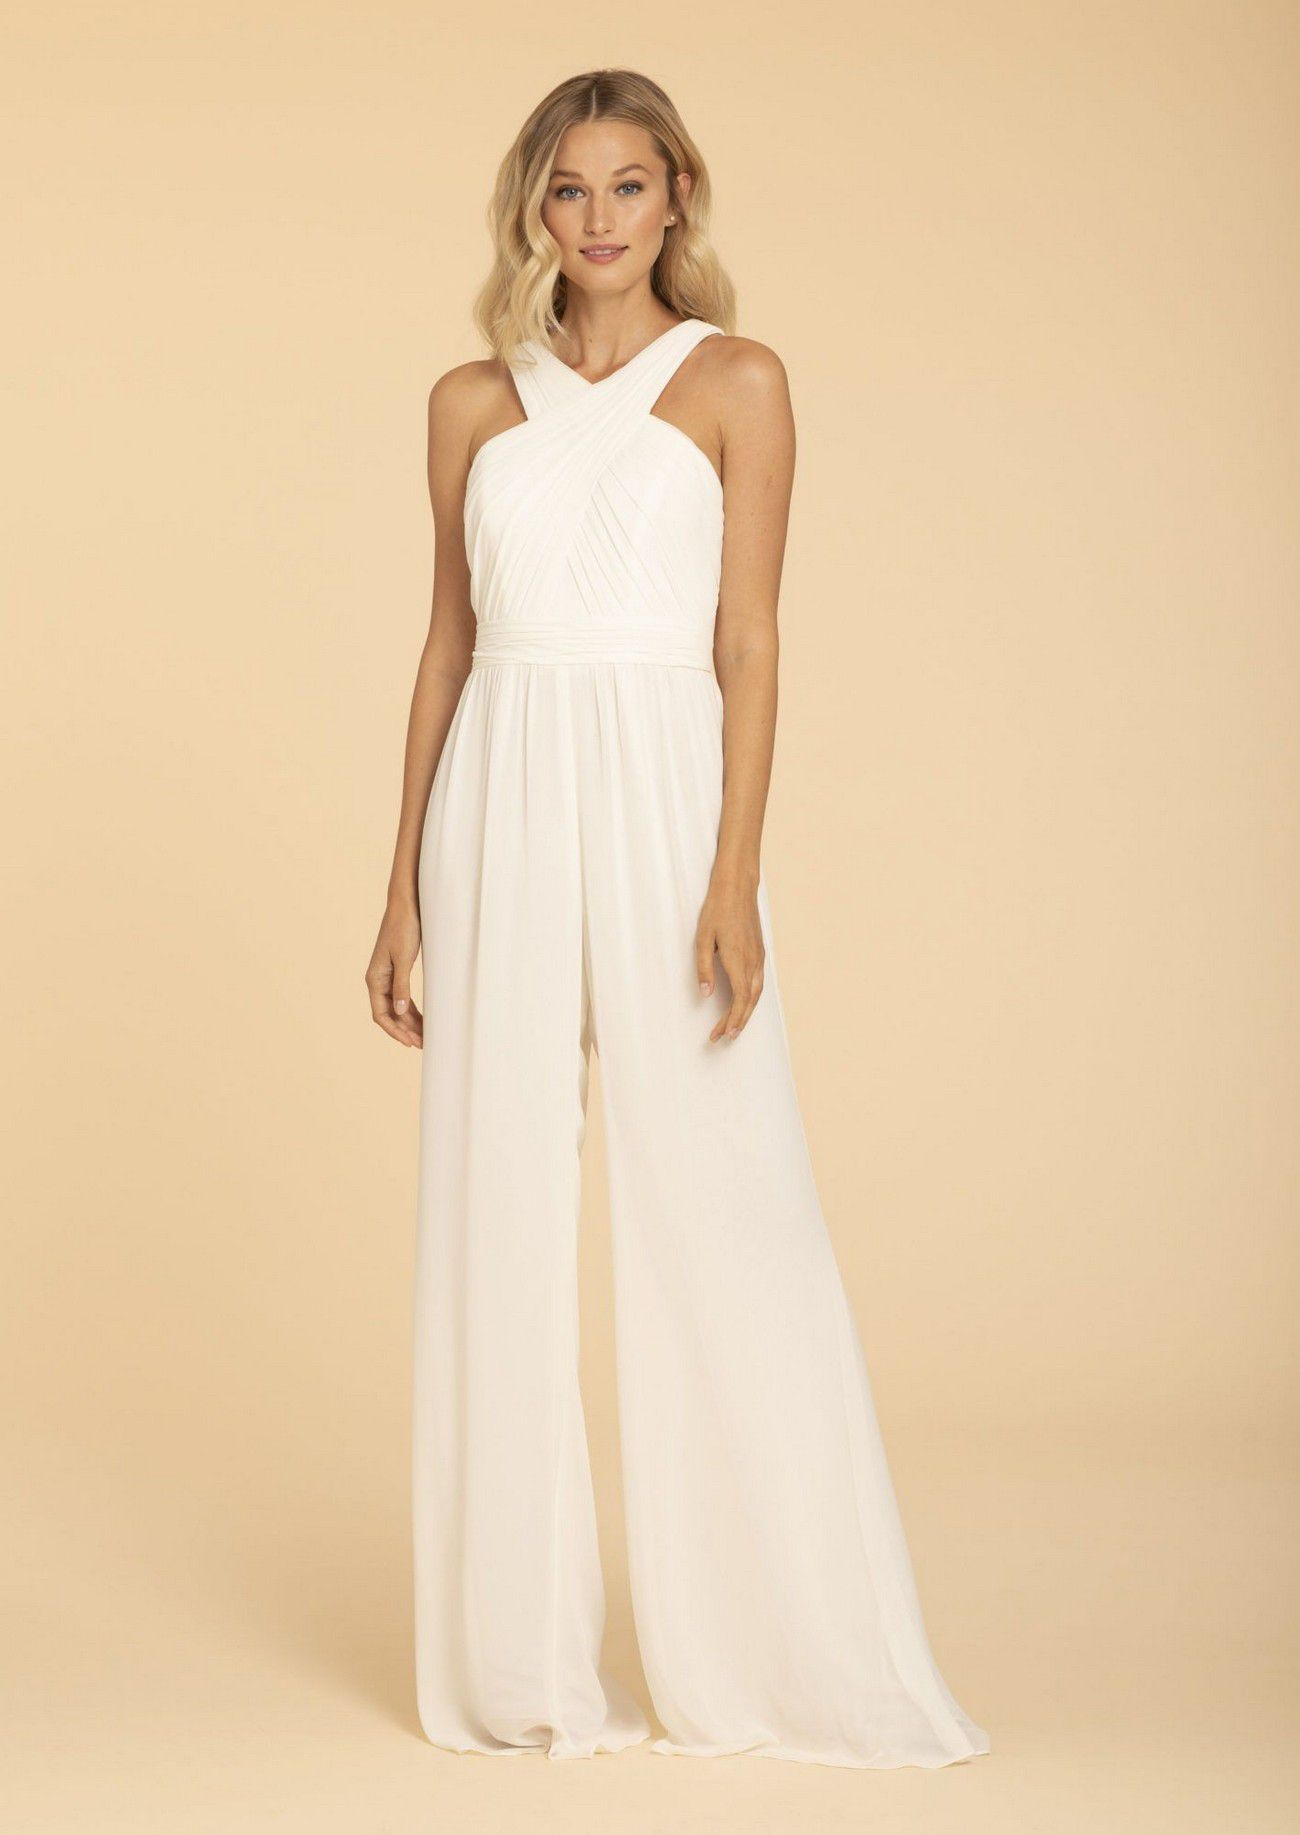 https://www.bridalreflections.com/wp-content/uploads/2019/10/hayley-paige-occasions-bridesmaids-spring-2020-style-52000-1417x2000.jpg